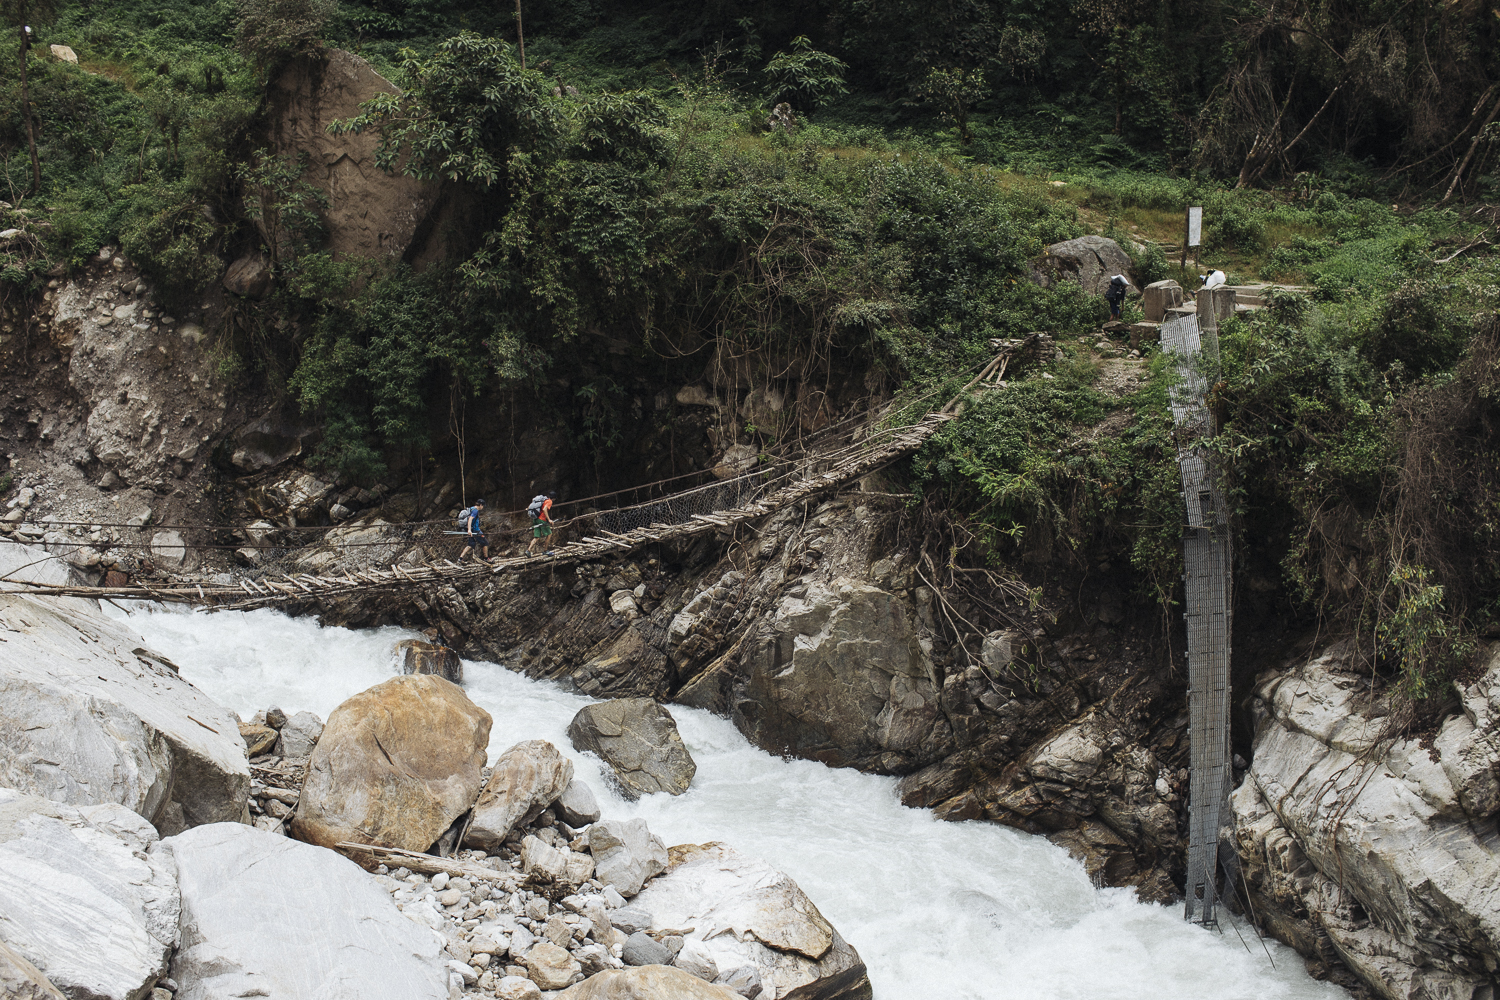 The long trek to base camp. The local people reinstalled the old bridge after the new one got swept away by a massive landslide just couple of weeks before during the heavy monsoon rain of [the 2016] season, wrote Hansjorg Auer. [Photo] Elias Holzkenecht